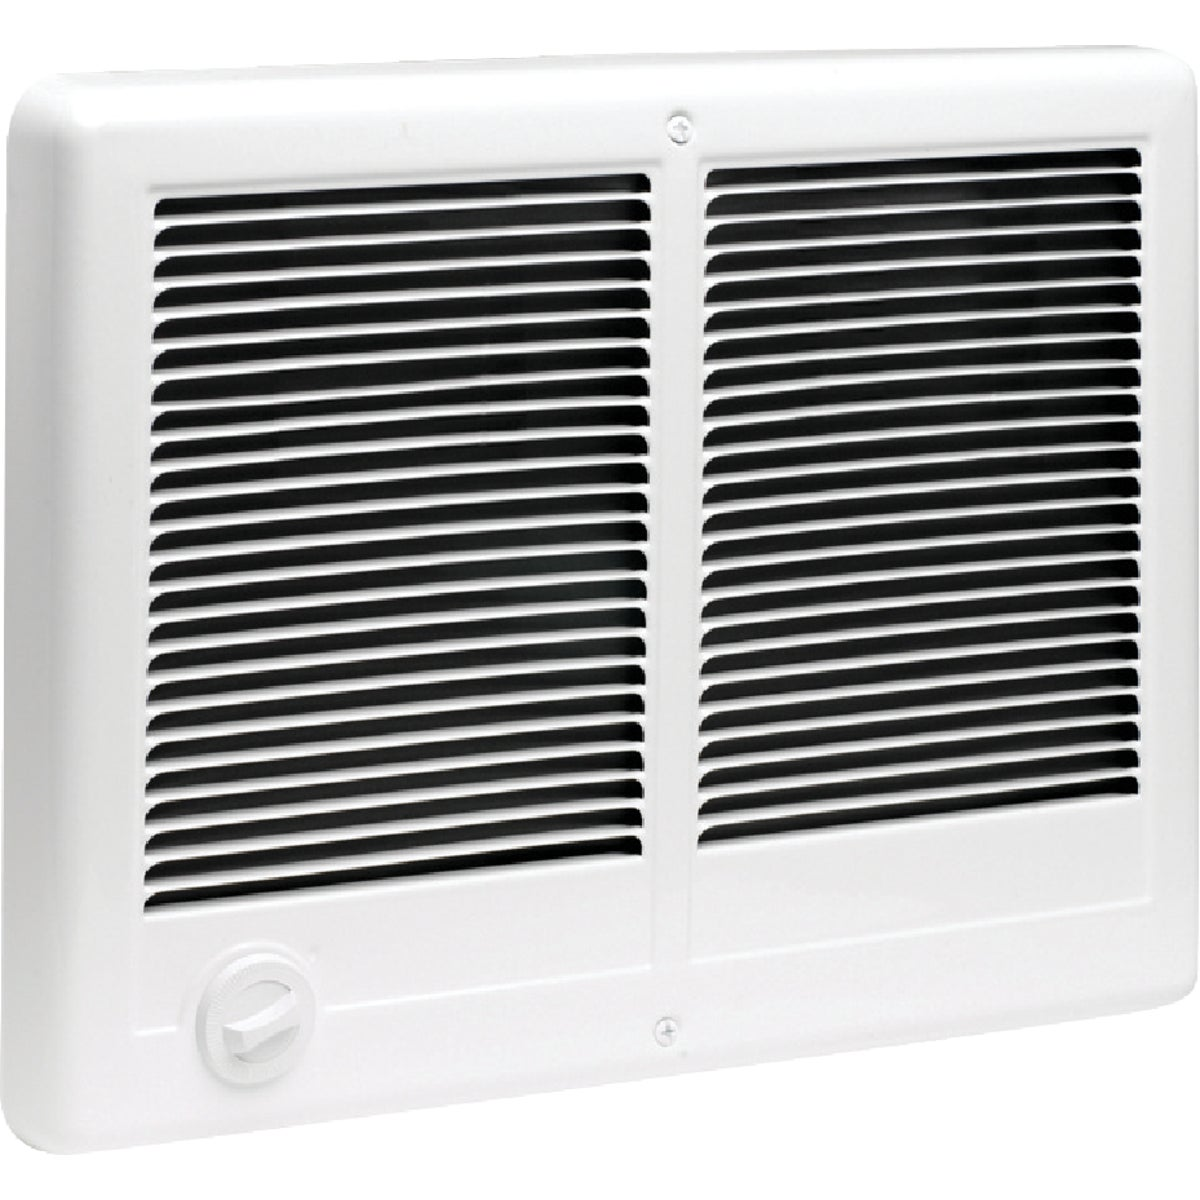 IN-WALL FAN HEATER - 67526 by Cadet Mfg Co